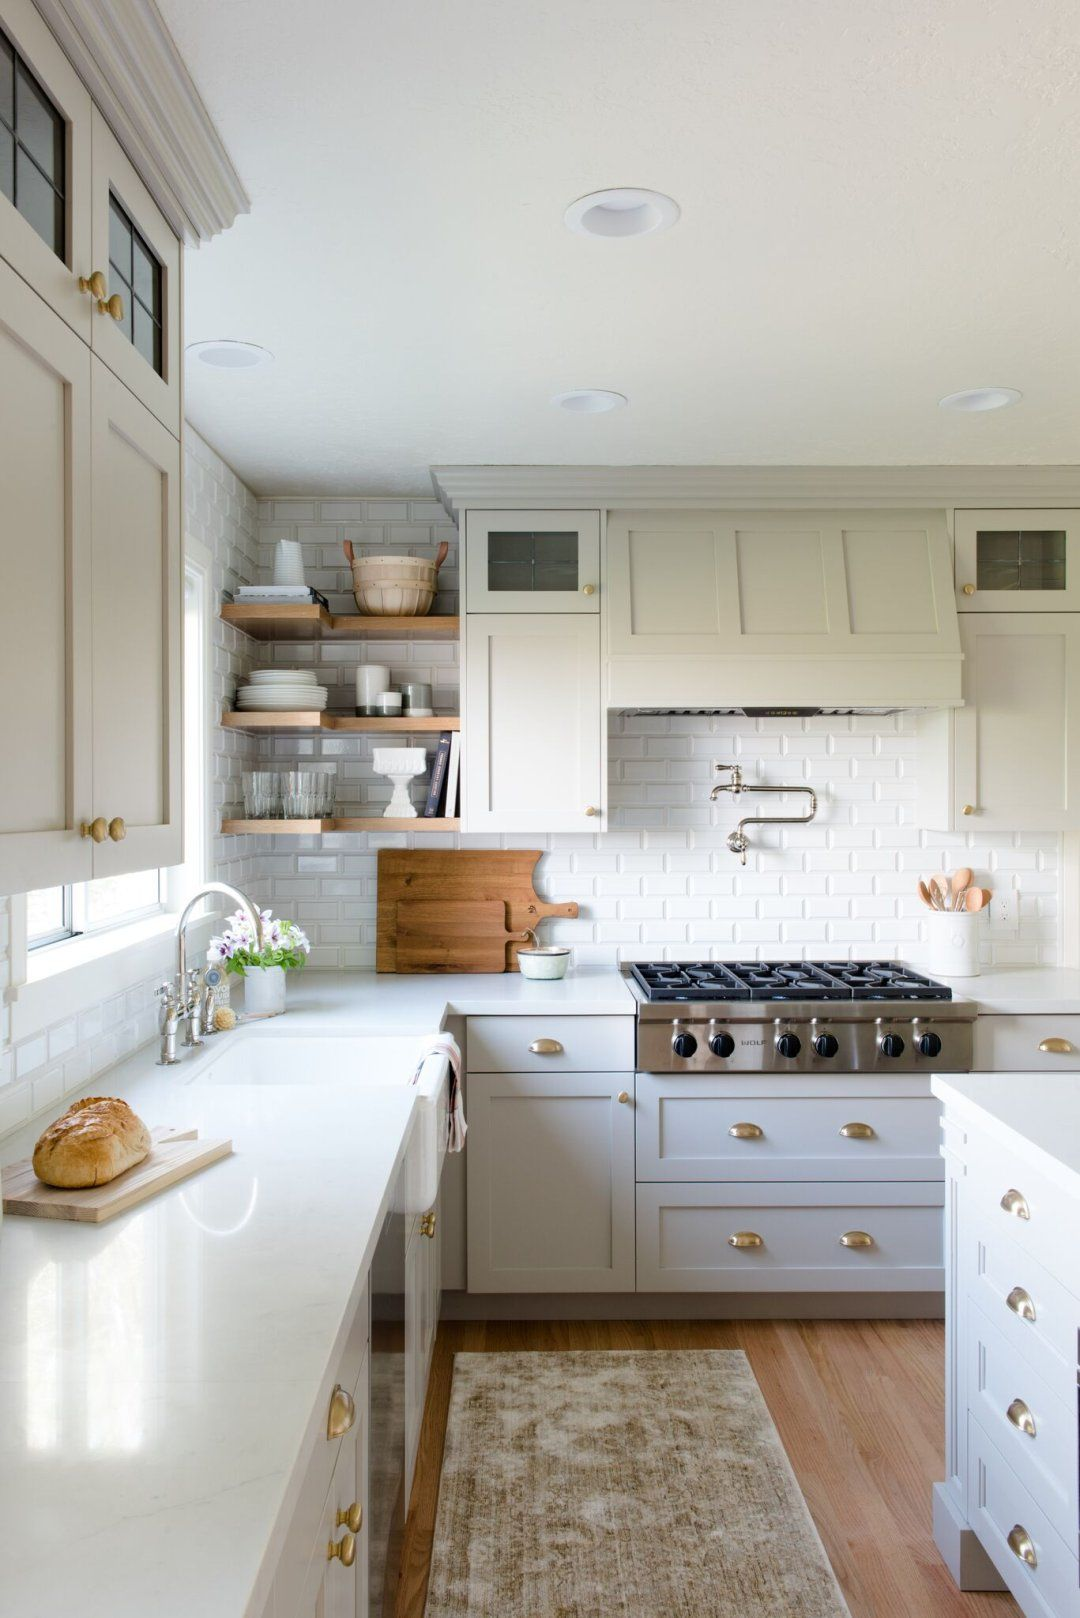 Evergreen kitchen remodel reveal light gray cabinets studio mcgee